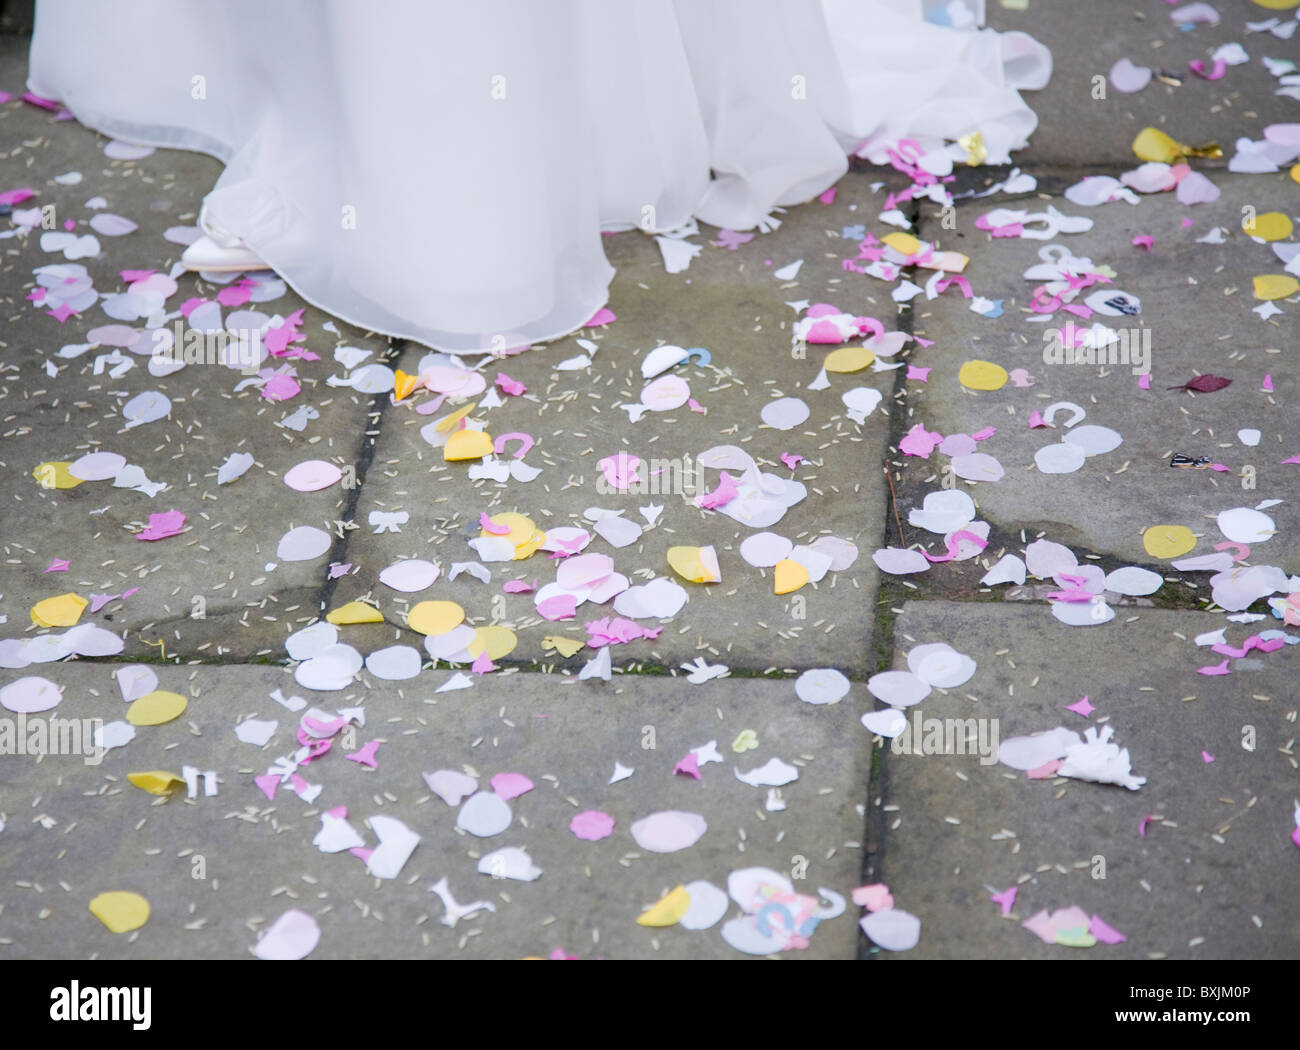 confetti on the floor at wedding - Stock Image